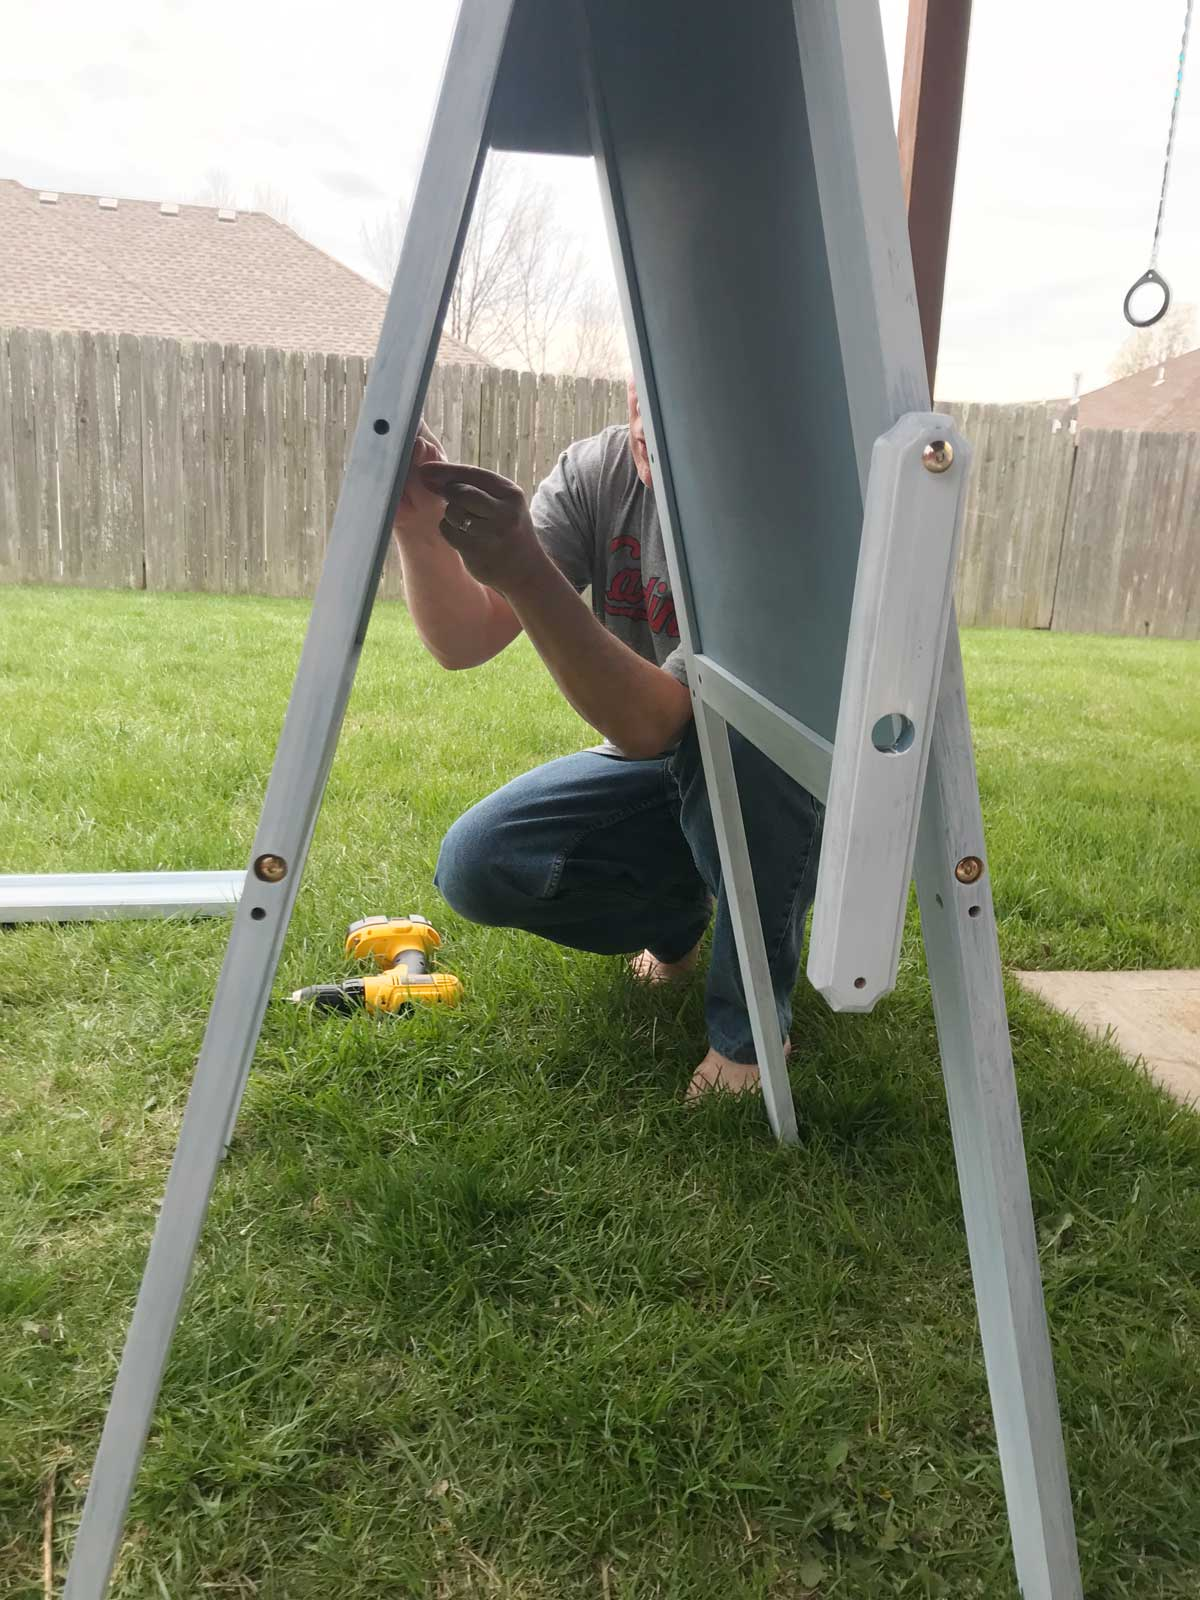 My dad then helped me reassemble the pieces — which was actually a harder task than we'd expected!